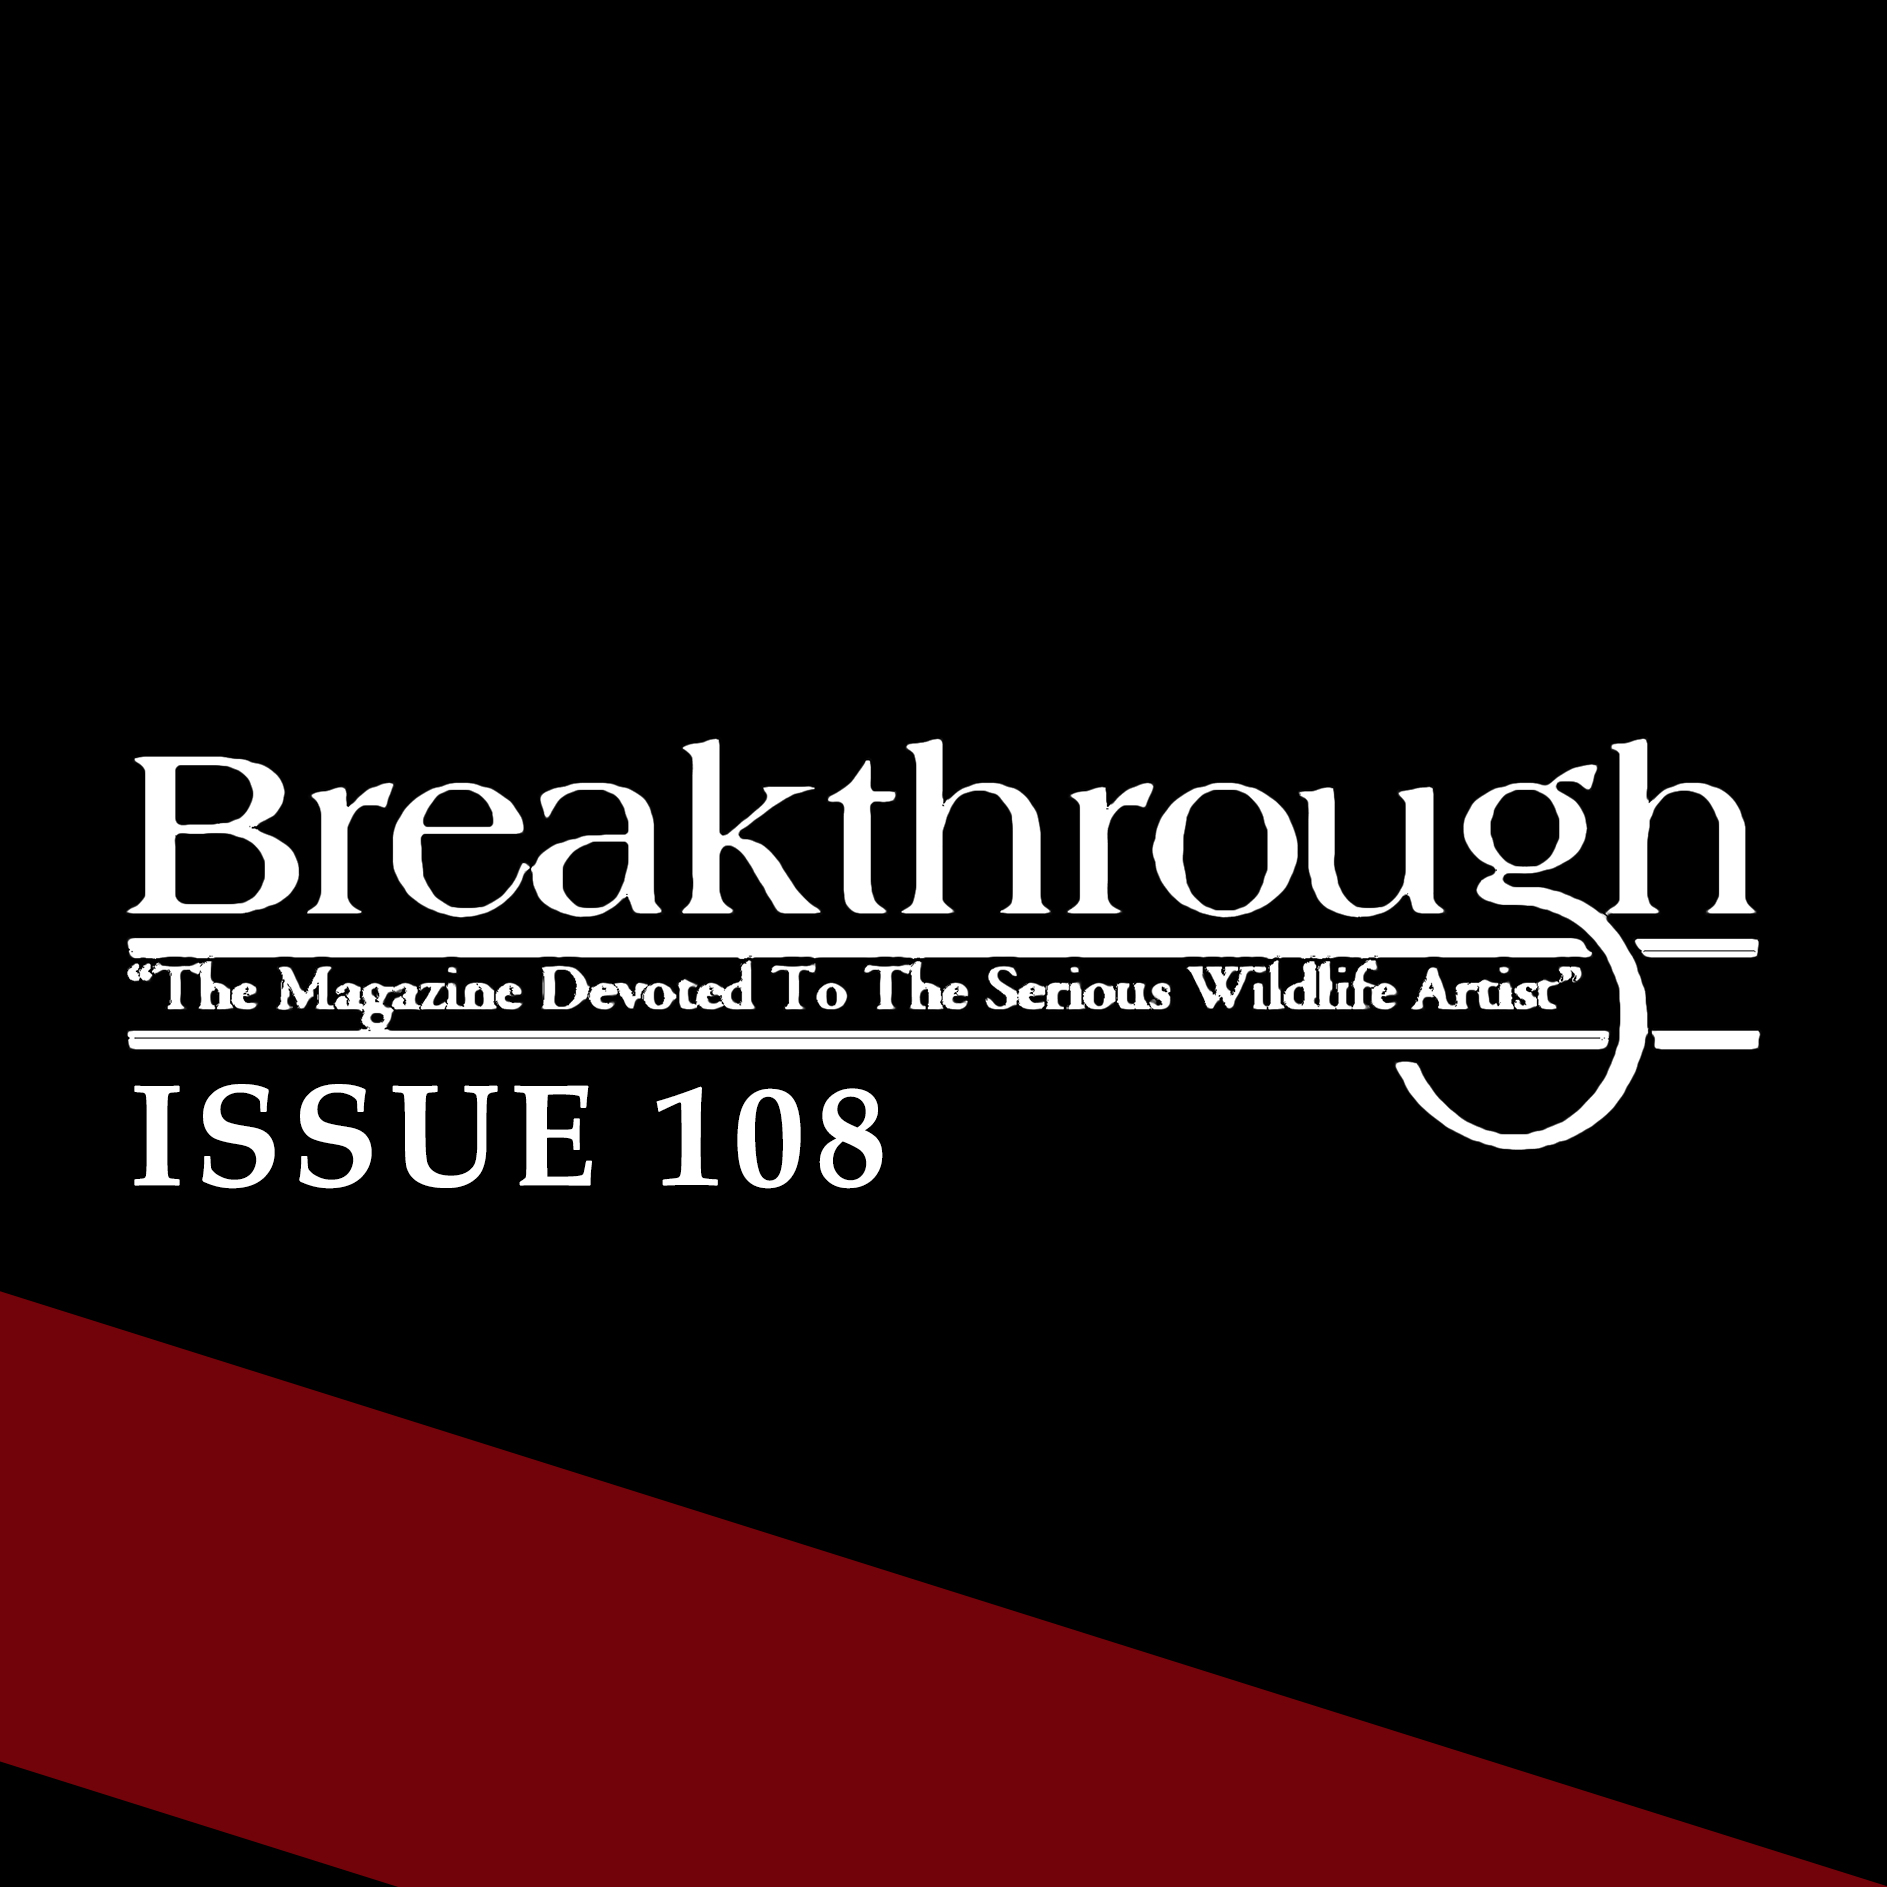 Breakthrough Magazine Issue 108.jpg